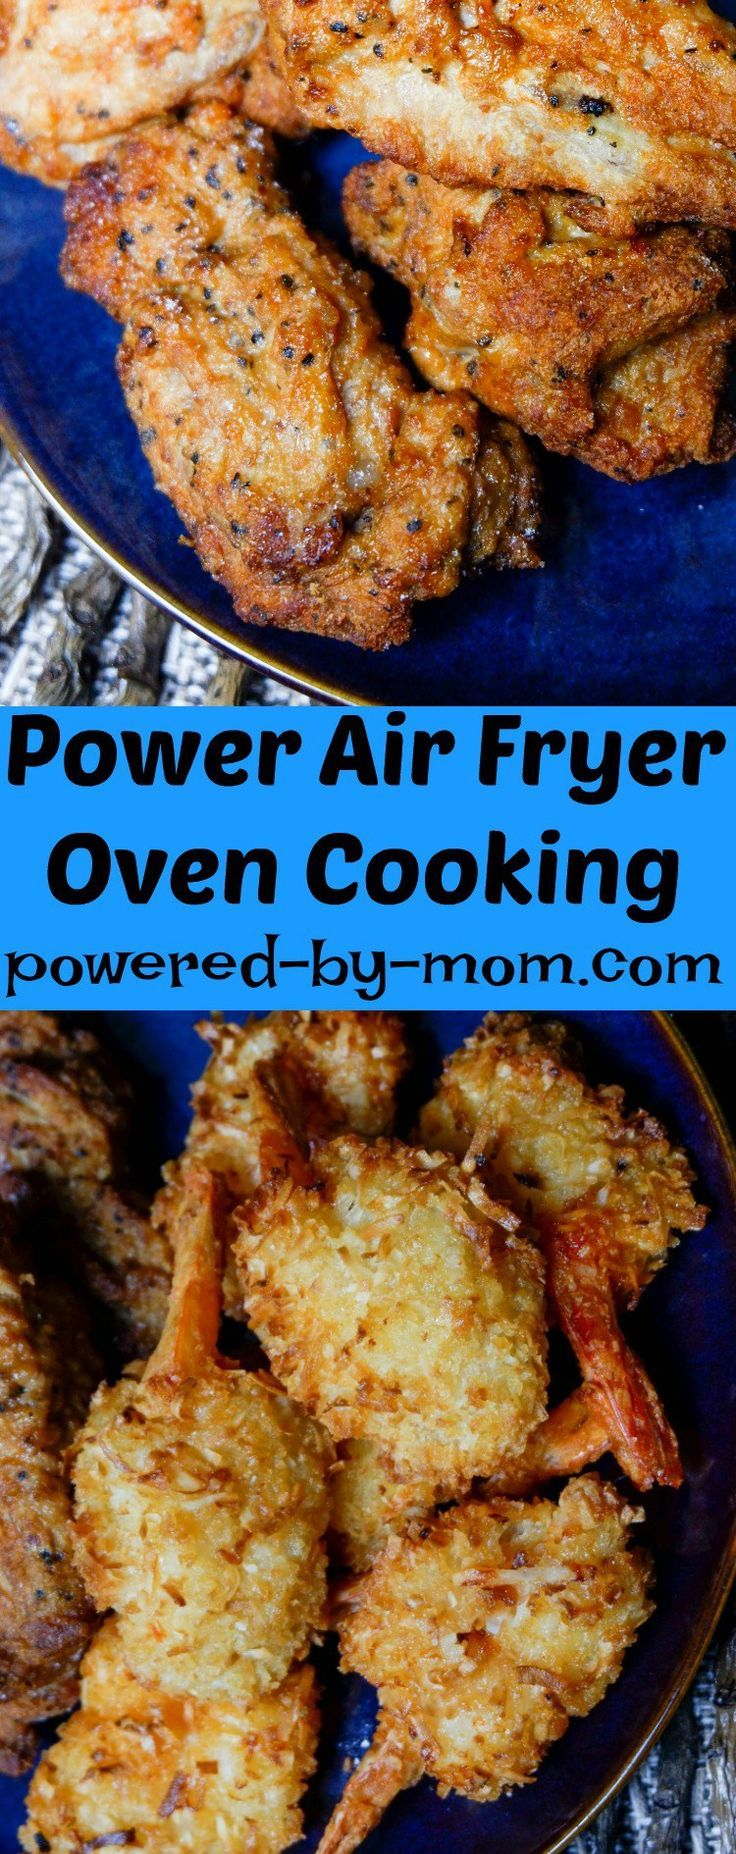 The Power Air Fryer Oven Replaces Your Deep Fryer Rotisserie Oven Dehydrator Oven Toaster